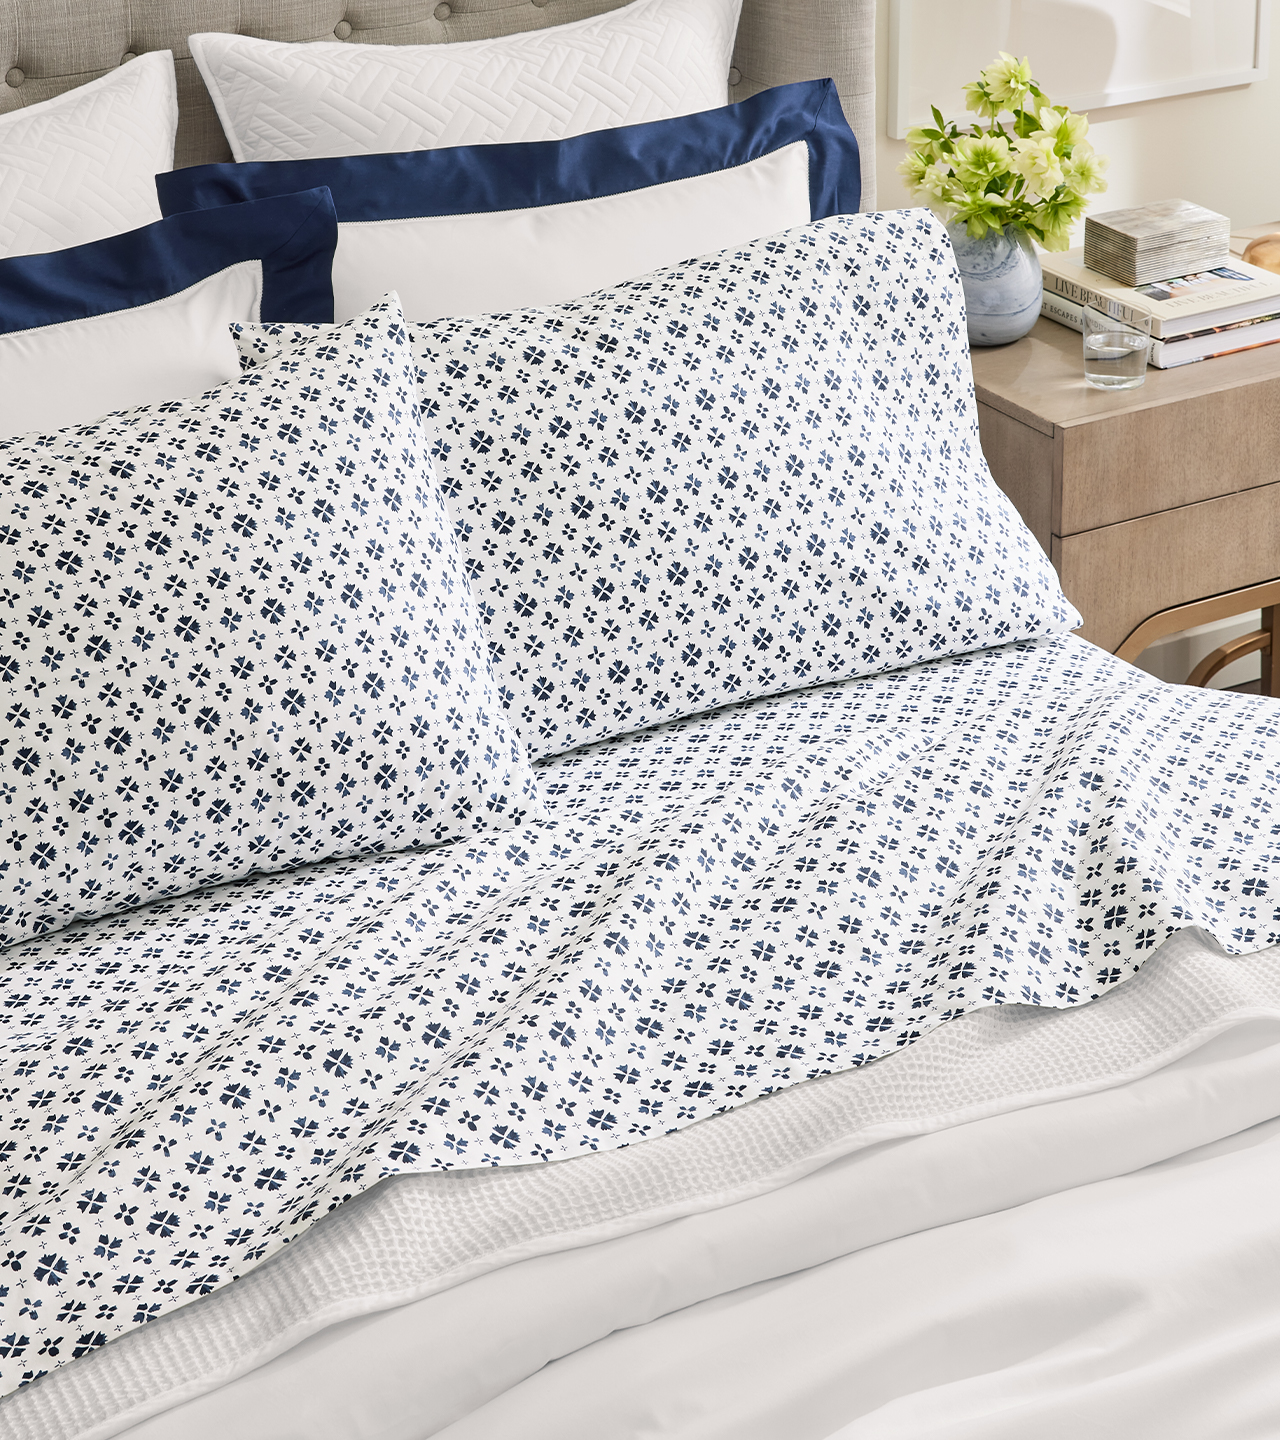 Signature Cottonseed Bed Sheets Set | Boll & Branch®